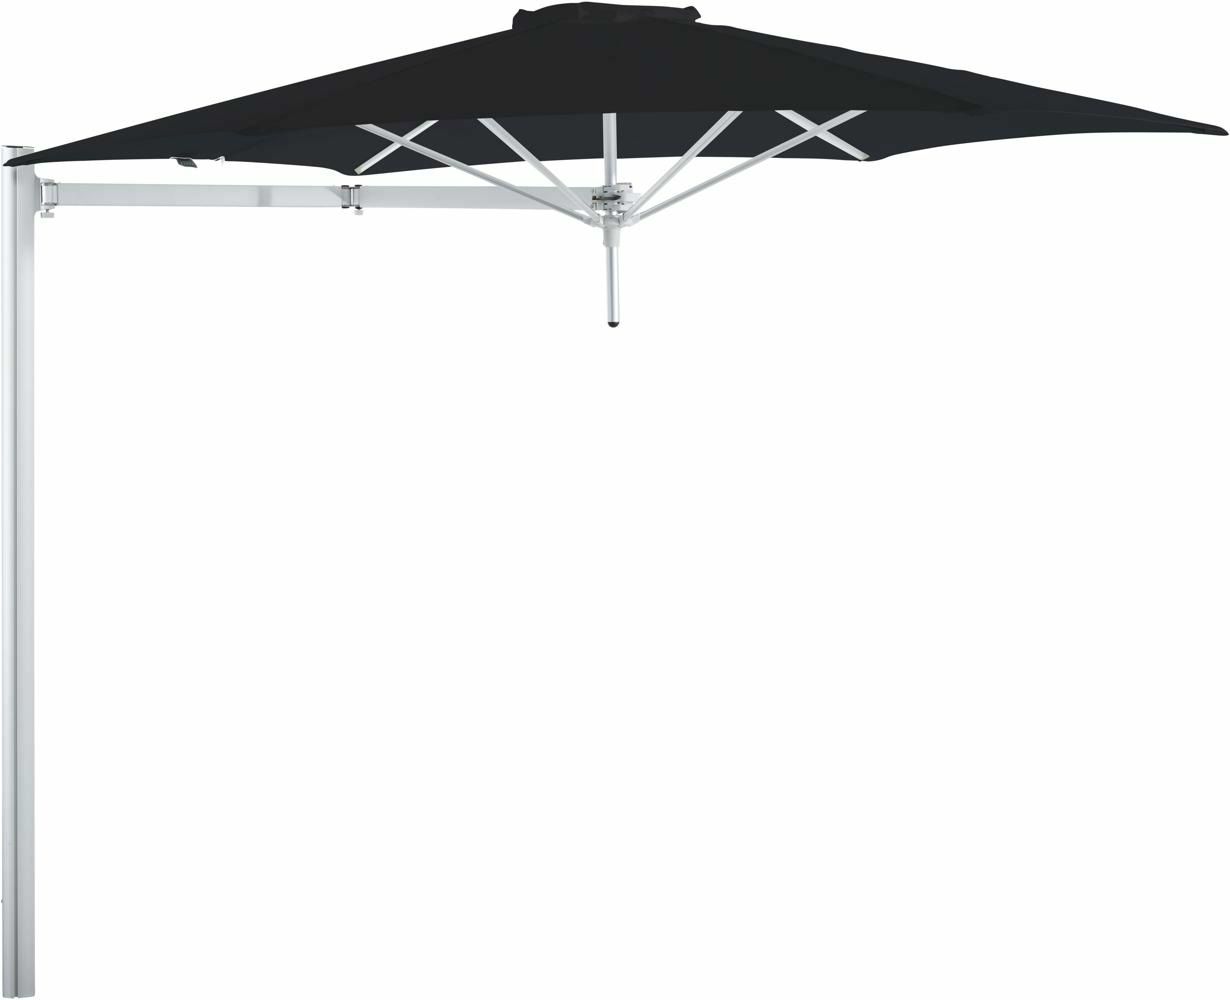 Paraflex cantilever umbrella round 3 m with Black fabric and a Neo arm